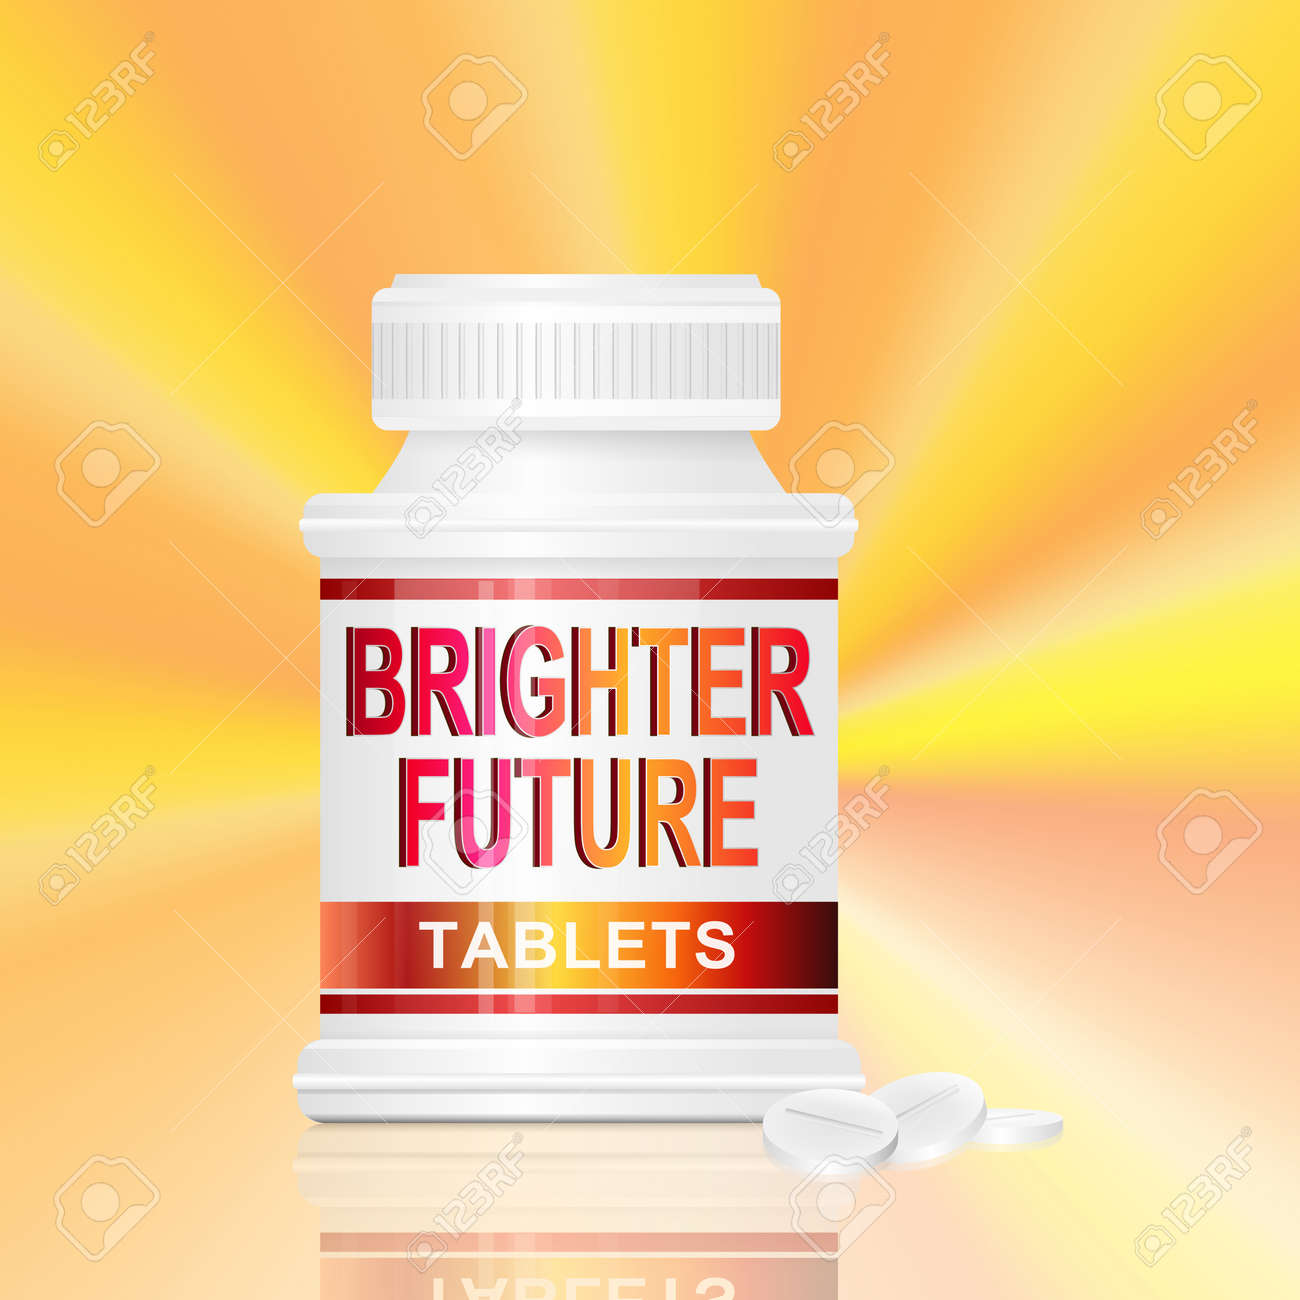 Illustration depicting a single medication container with the words 'brighter future tablets' on the front with golden light effect background and a few tablets in the foreground. Stock Photo - 12739944